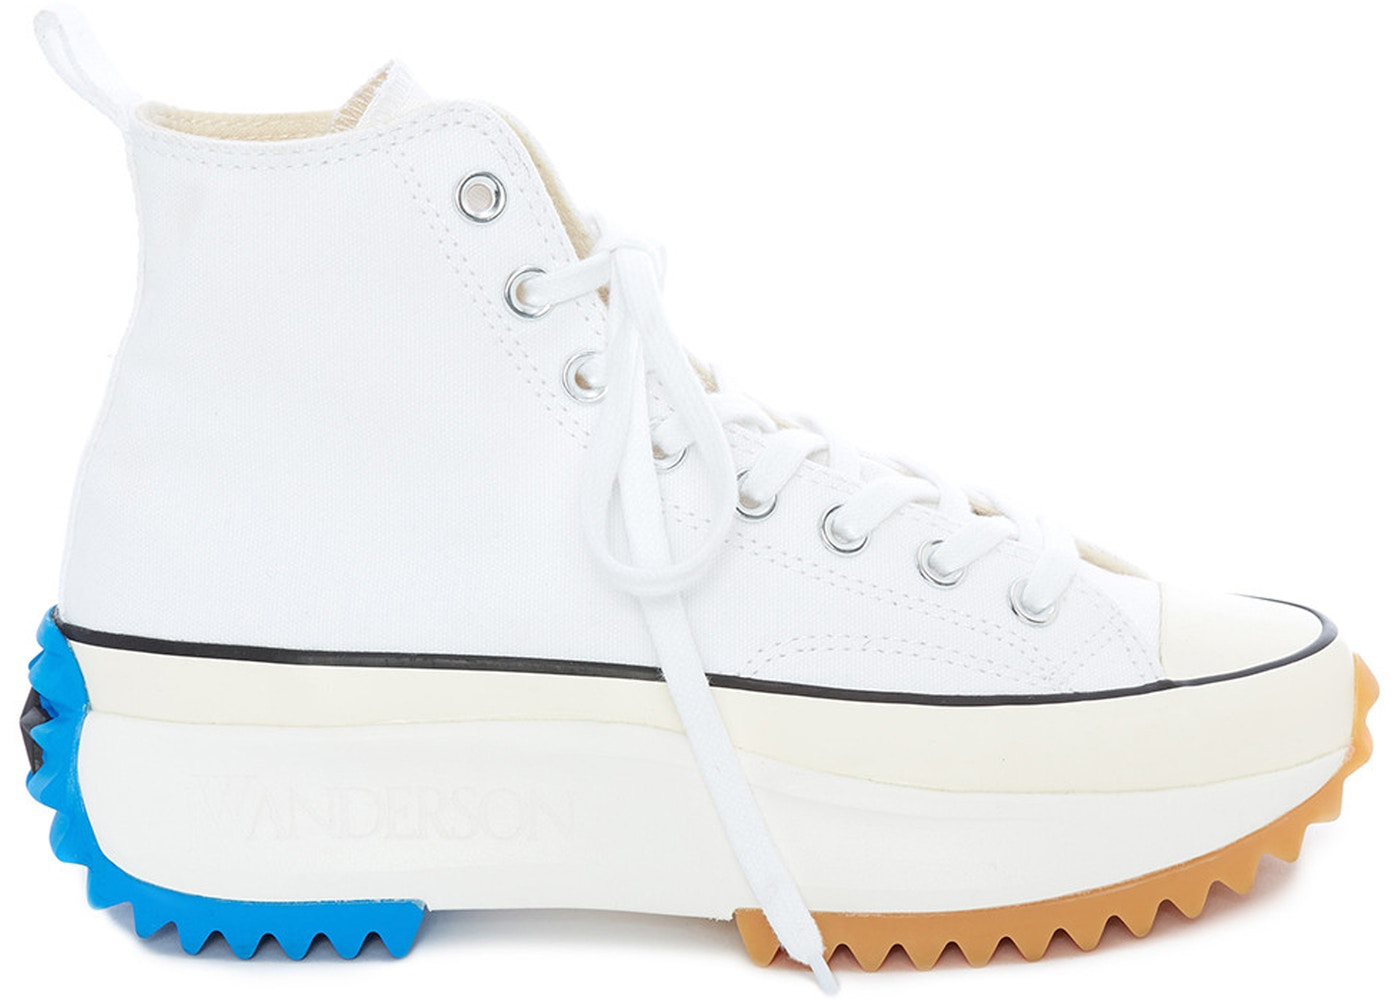 Star Converse Hike Anderson White Jw Sneakers Run CodWrxBe